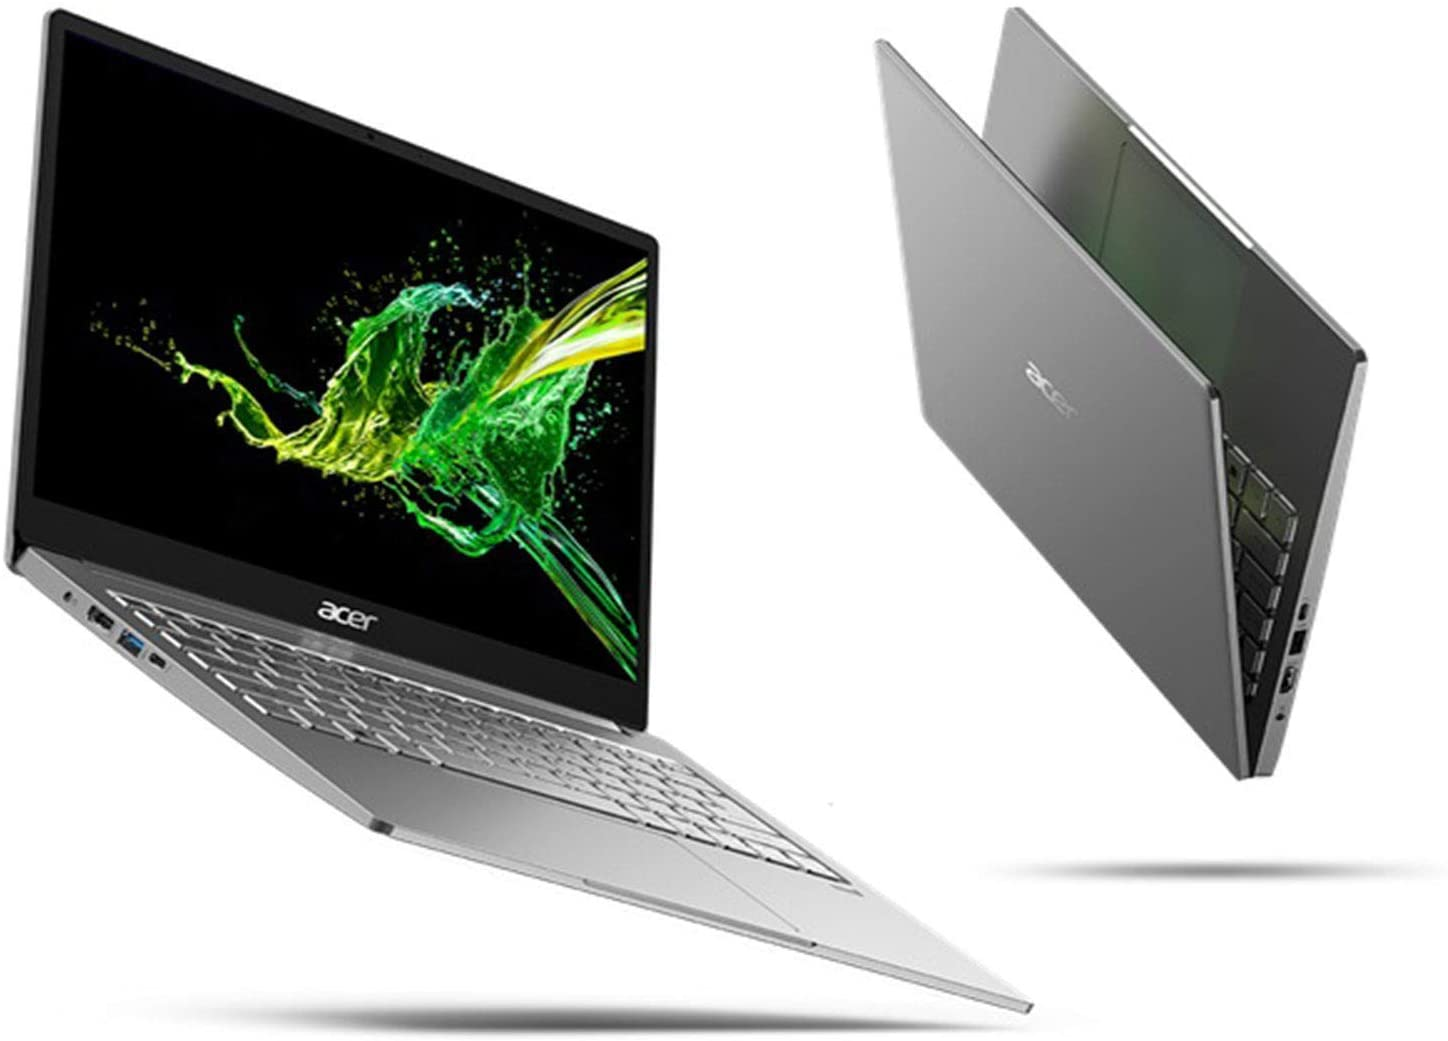 "Acer Swift 3 Thin & Light 13.5"" 2256 x 1504 IPS Display, 10th Gen Intel Core i7-1065G7, 16GB LPDDR4X, 1TB NVMe SSD, Wi-Fi 6, Fingerprint Reader, Back-lit Keyboard, SF313-52-79FS"